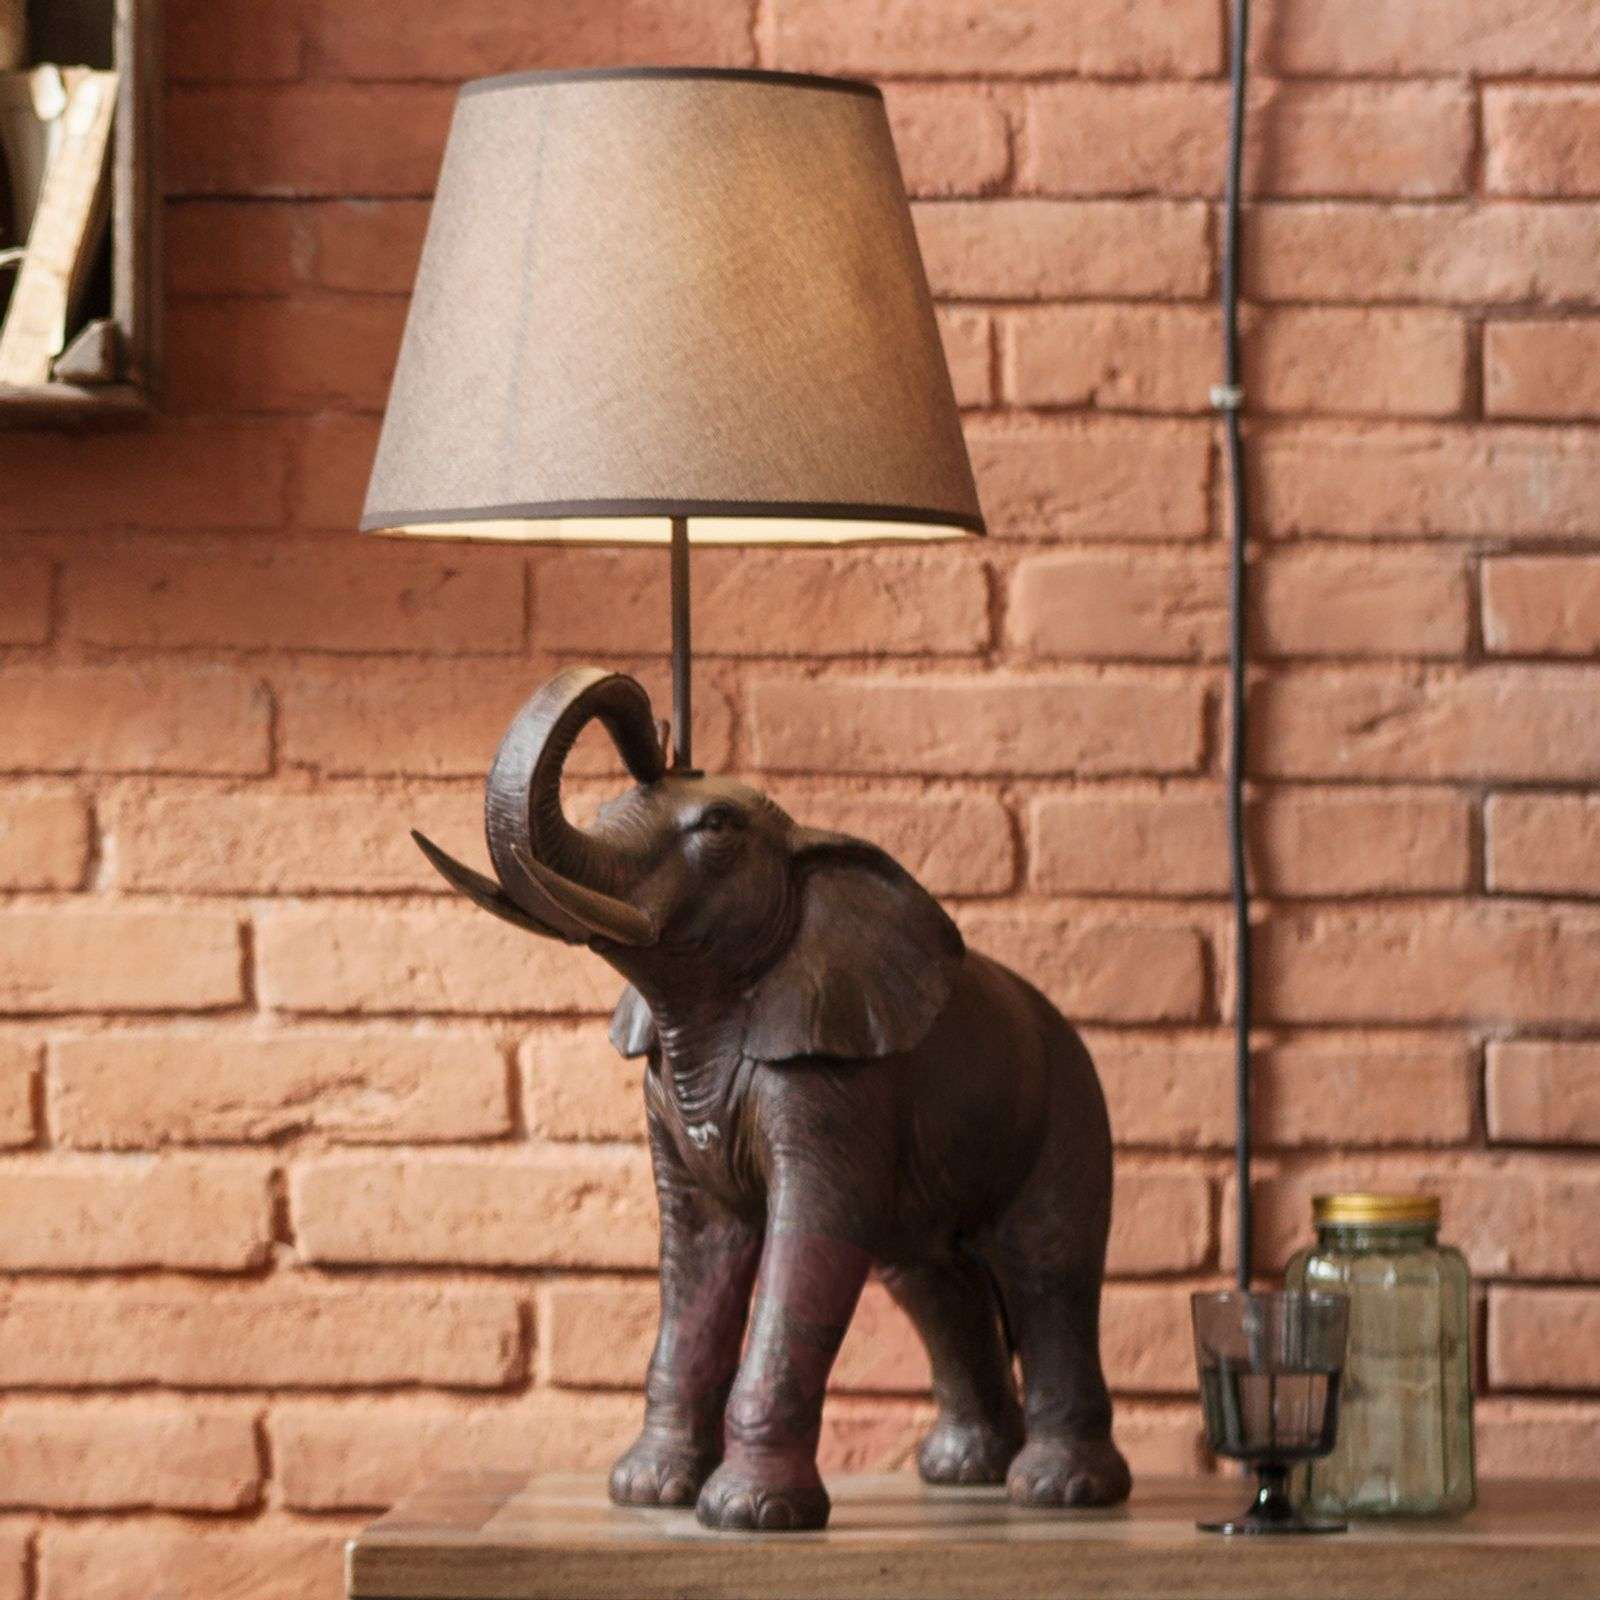 Table Lamp Elephant Safari 5517465 01 ...